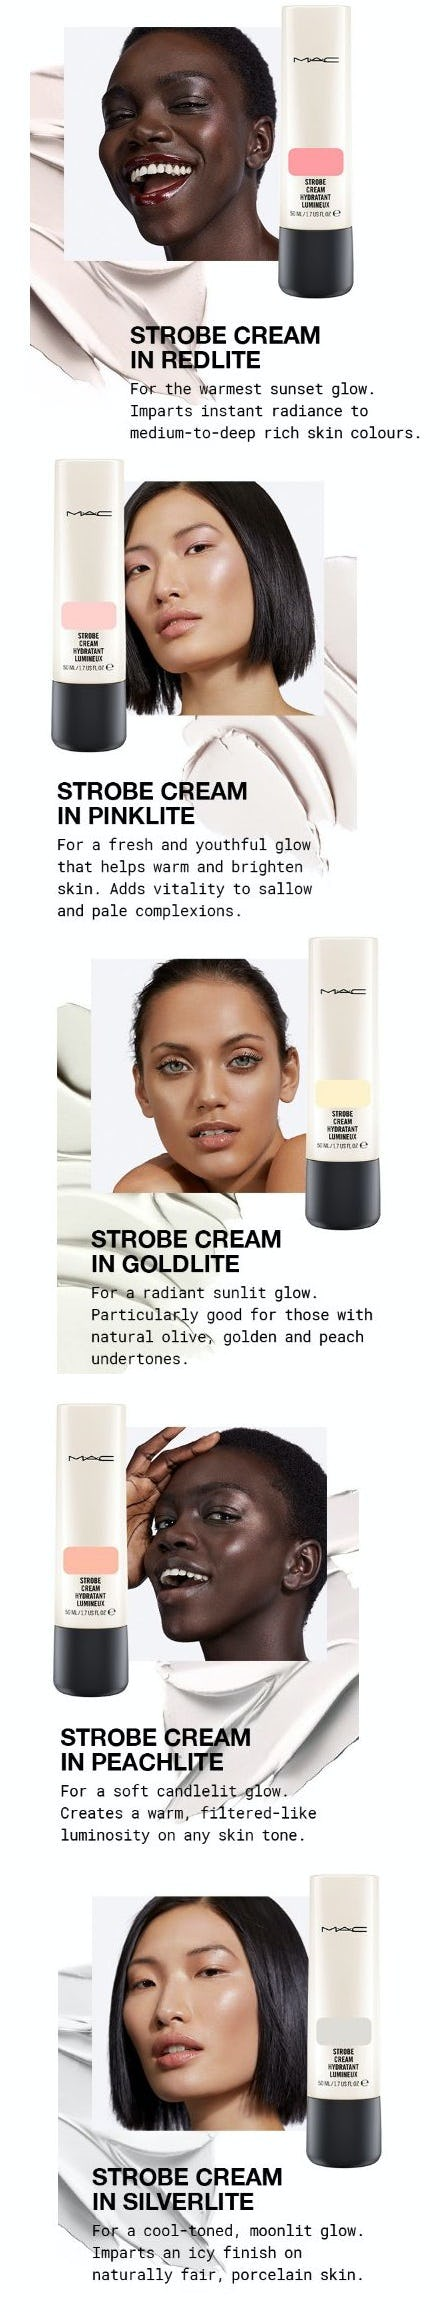 Your Perfect Strobe Cream Shade from MAC Cosmetics